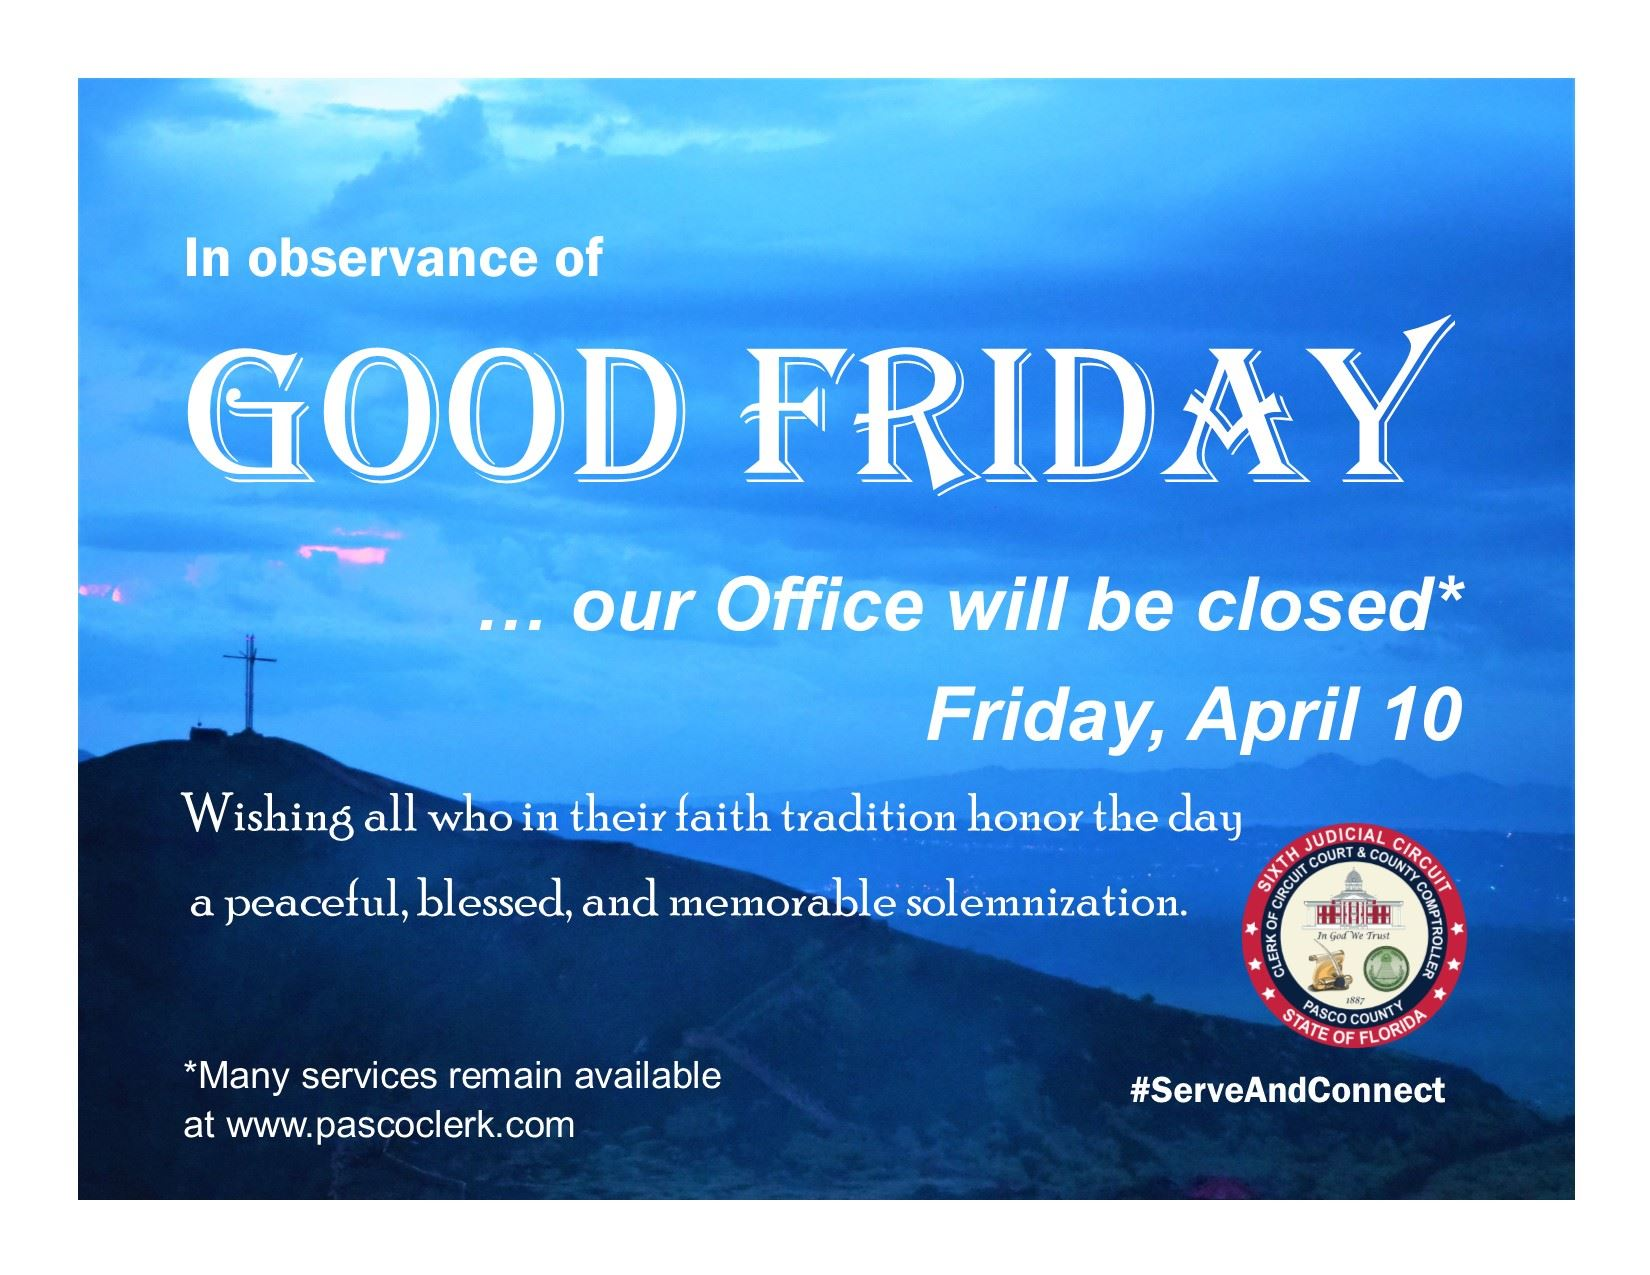 Good Friday notice has a blue sky at sunset overlooking a valley and, in the distance on the left, a